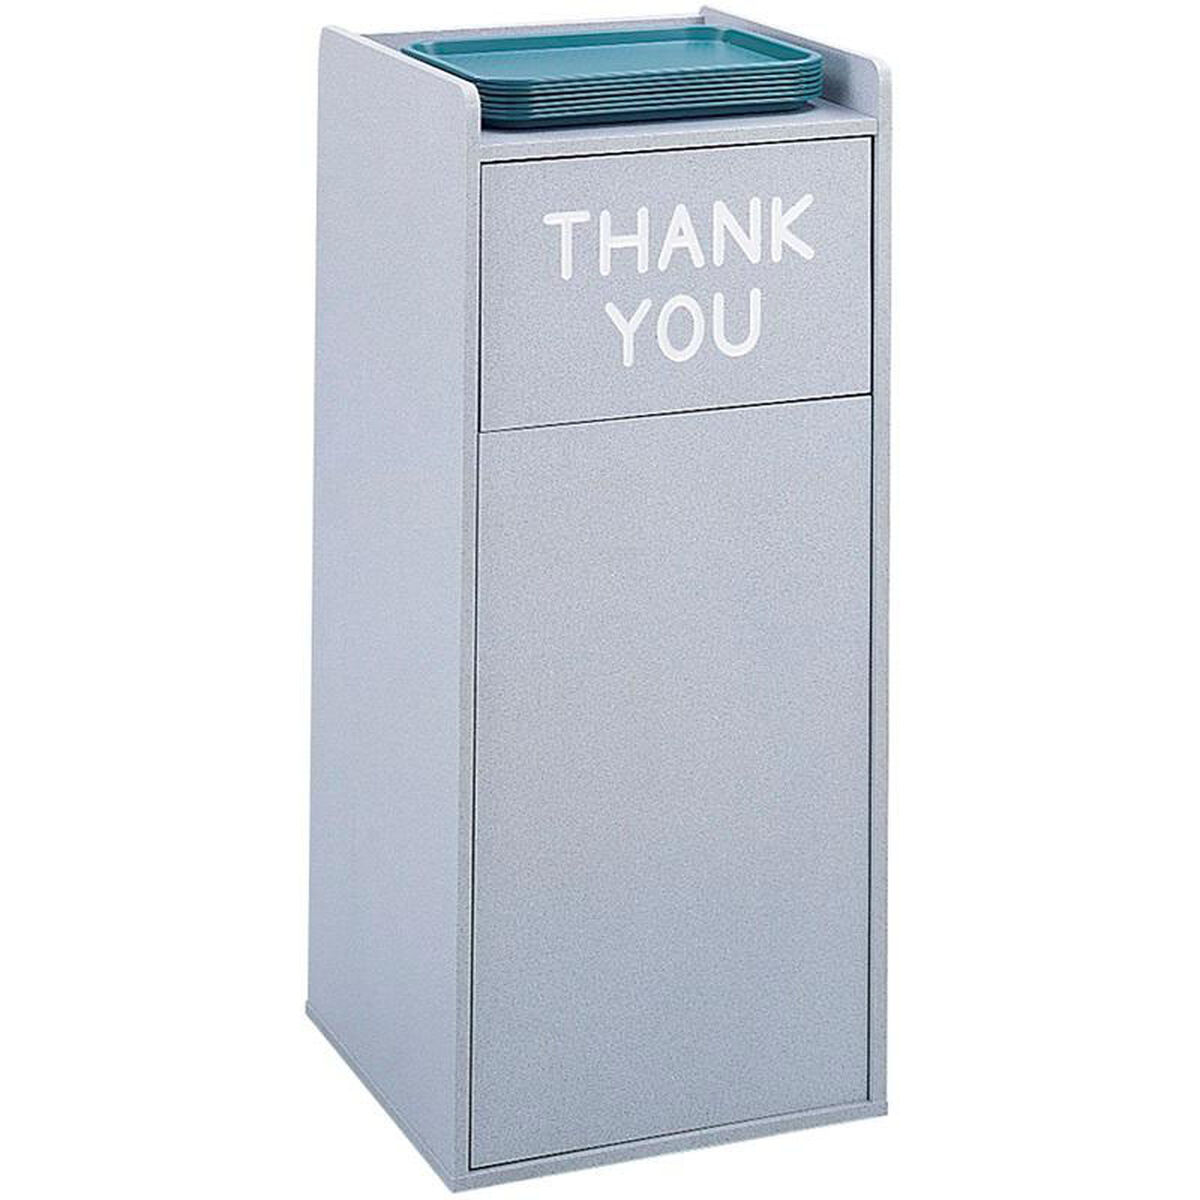 Ha 822 09 310 in addition 37365871880268744 as well Half Moon Waste Receptacle in addition Ada Bathroom Paper Towel Dispenser Height further Rubbermaid 6140 Plastic Surface Wall Mount Sanitary Napkin Receptacle With Rigid Liner. on wall mounted trash receptacle